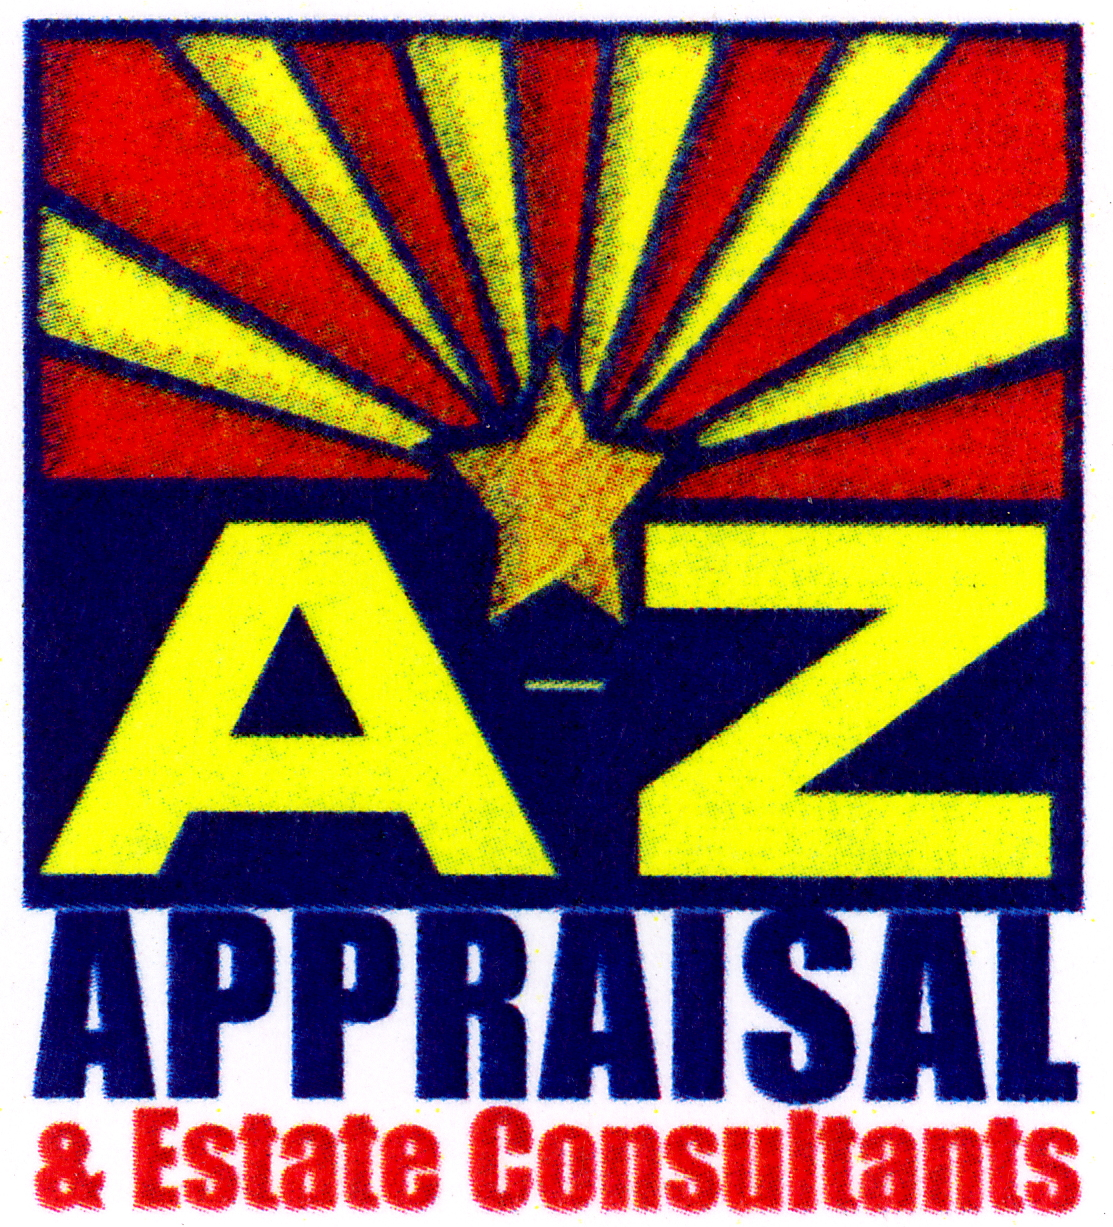 A-Z Appraisal & Estate Consultants